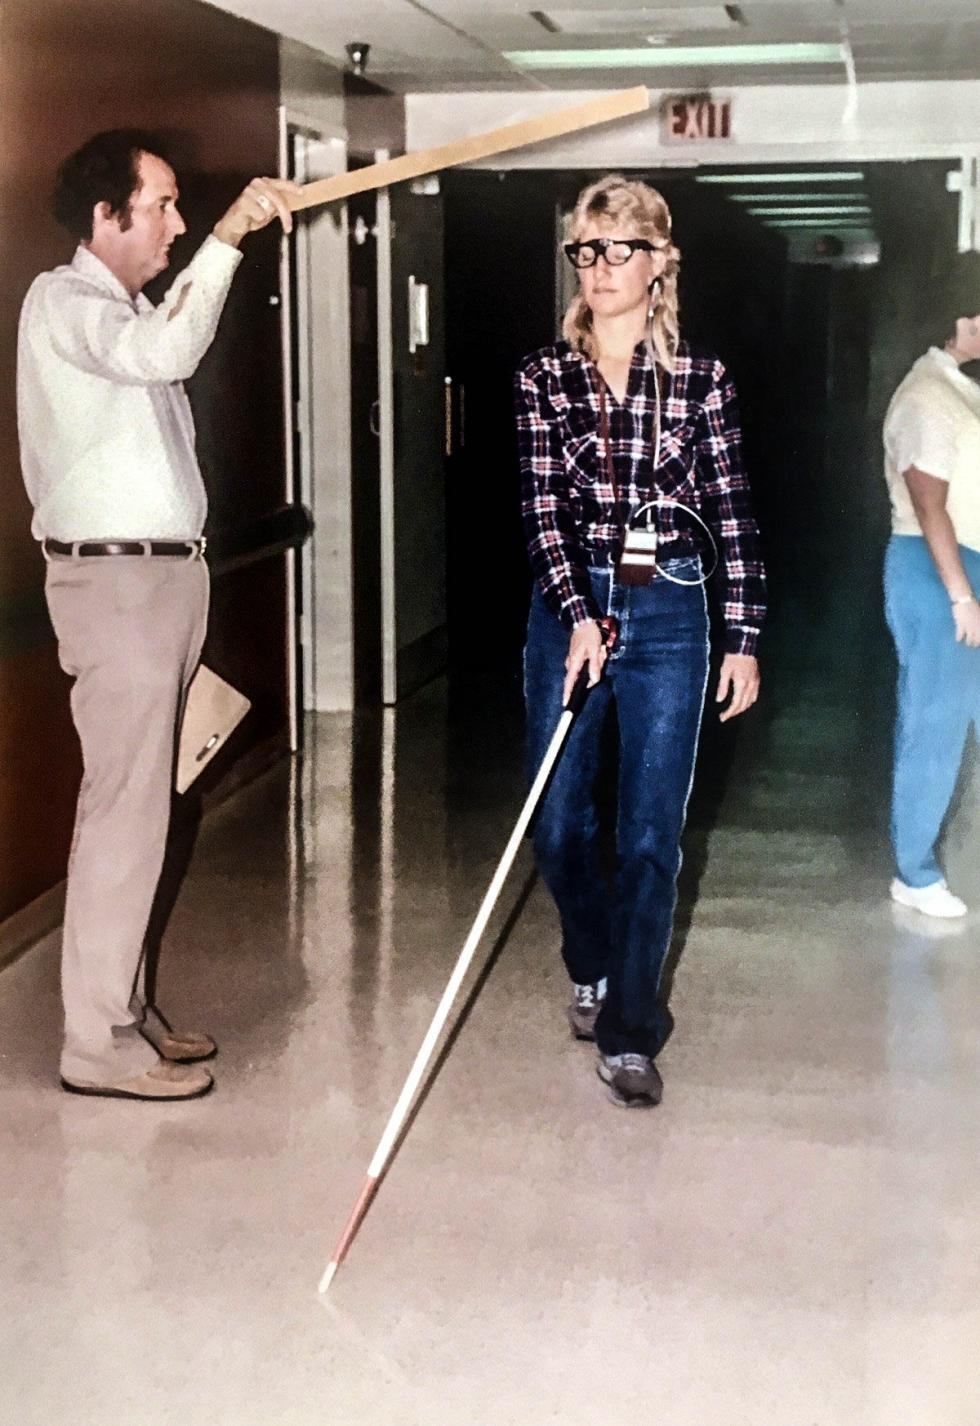 Training in the use of sonar device with the long cane to detect head level obstacles (late 1980s,Western Blind Rehabilitation Center, Palo Alto)